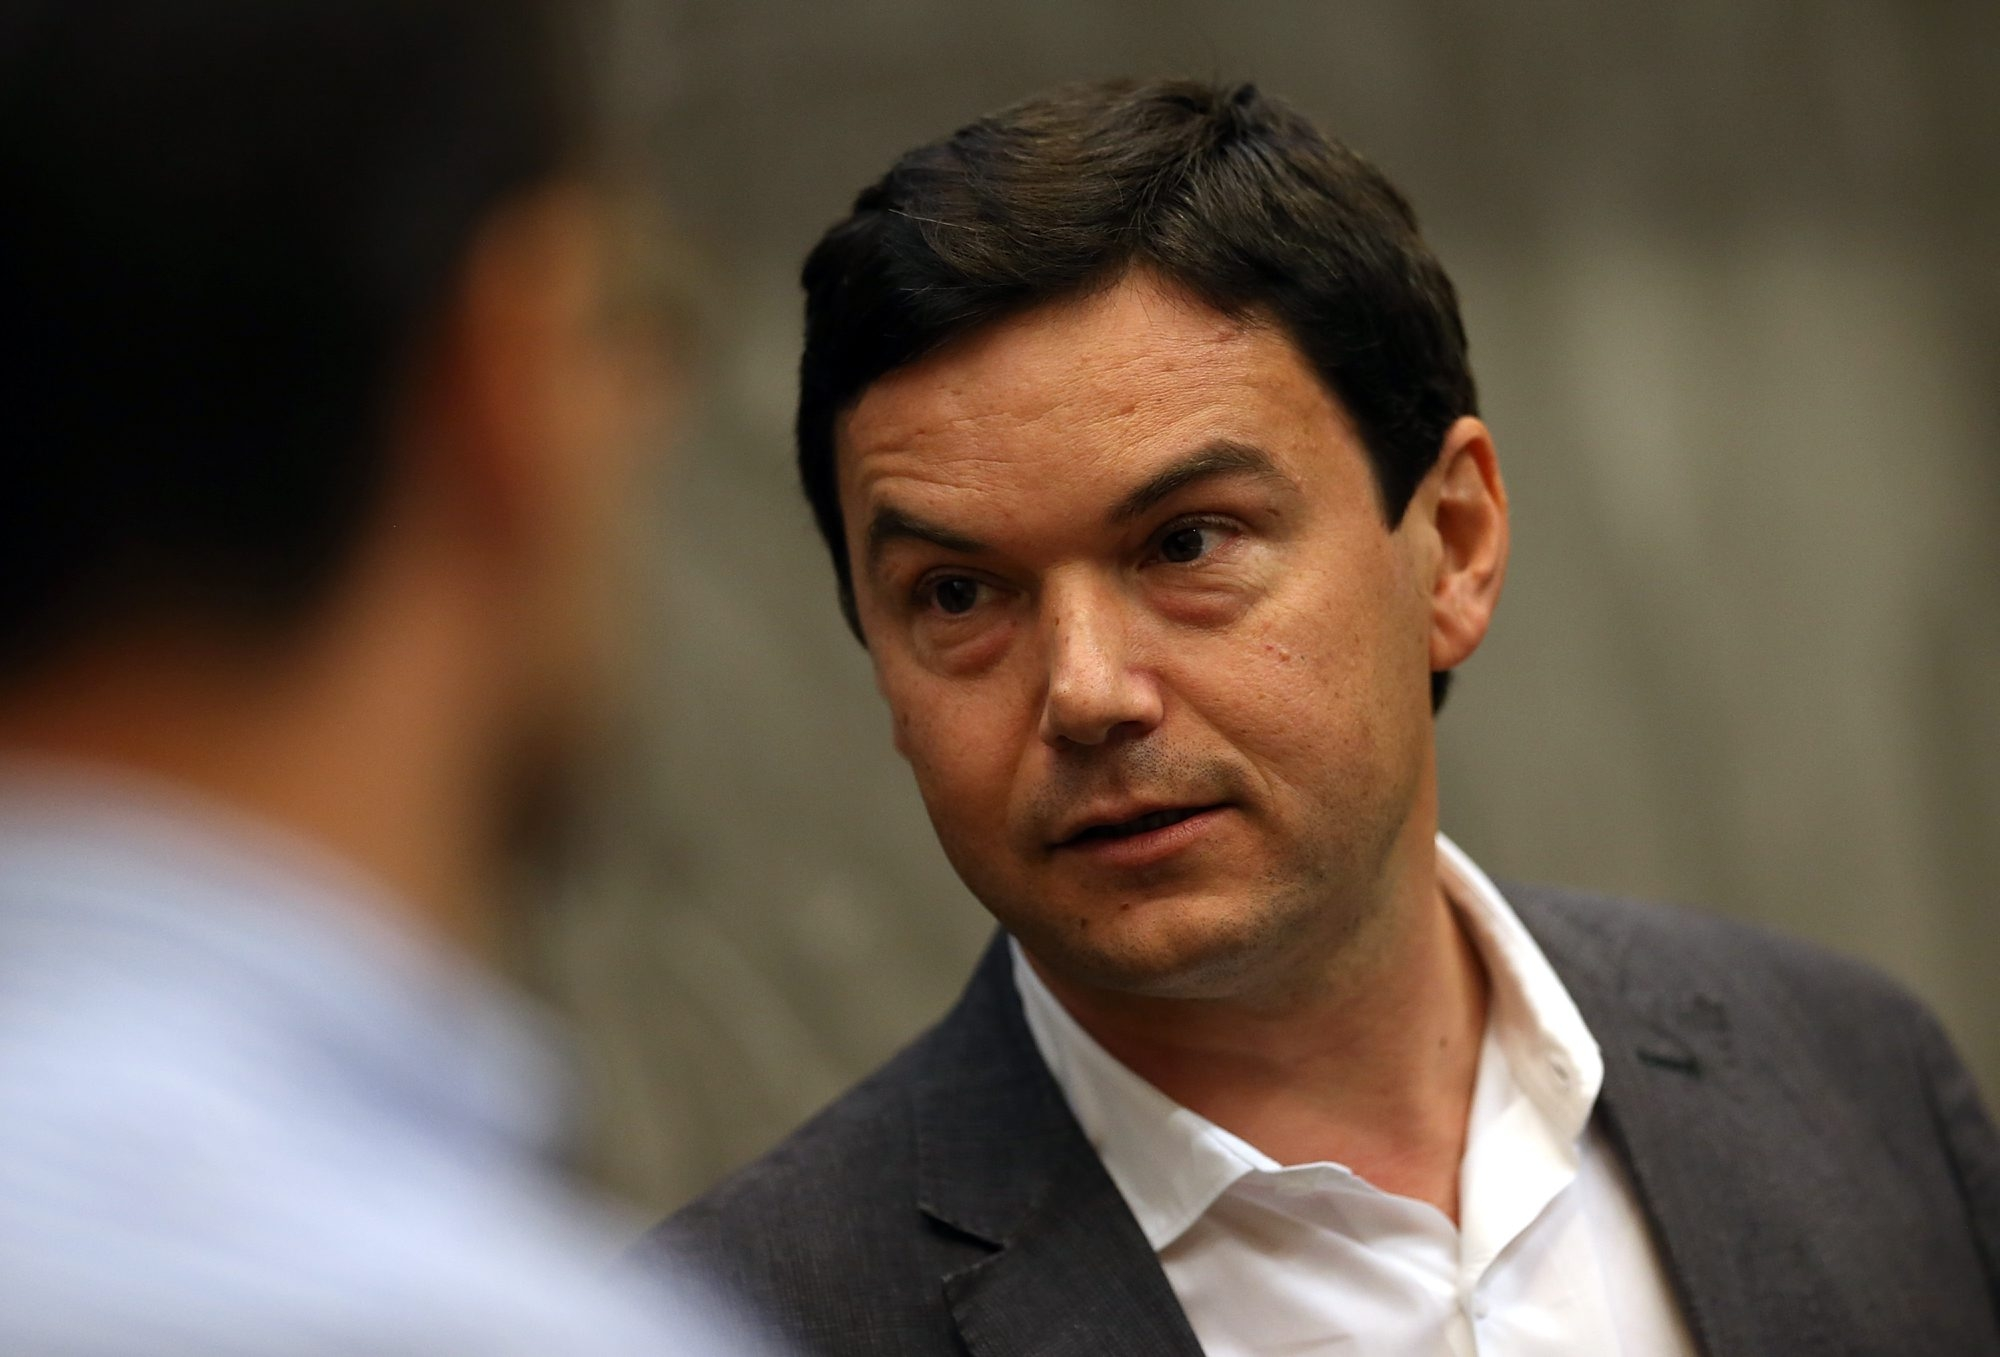 French economist and author Thomas Piketty traces many of the financial and political problems in the world today to financial deregulation that occurred during the 1980s.